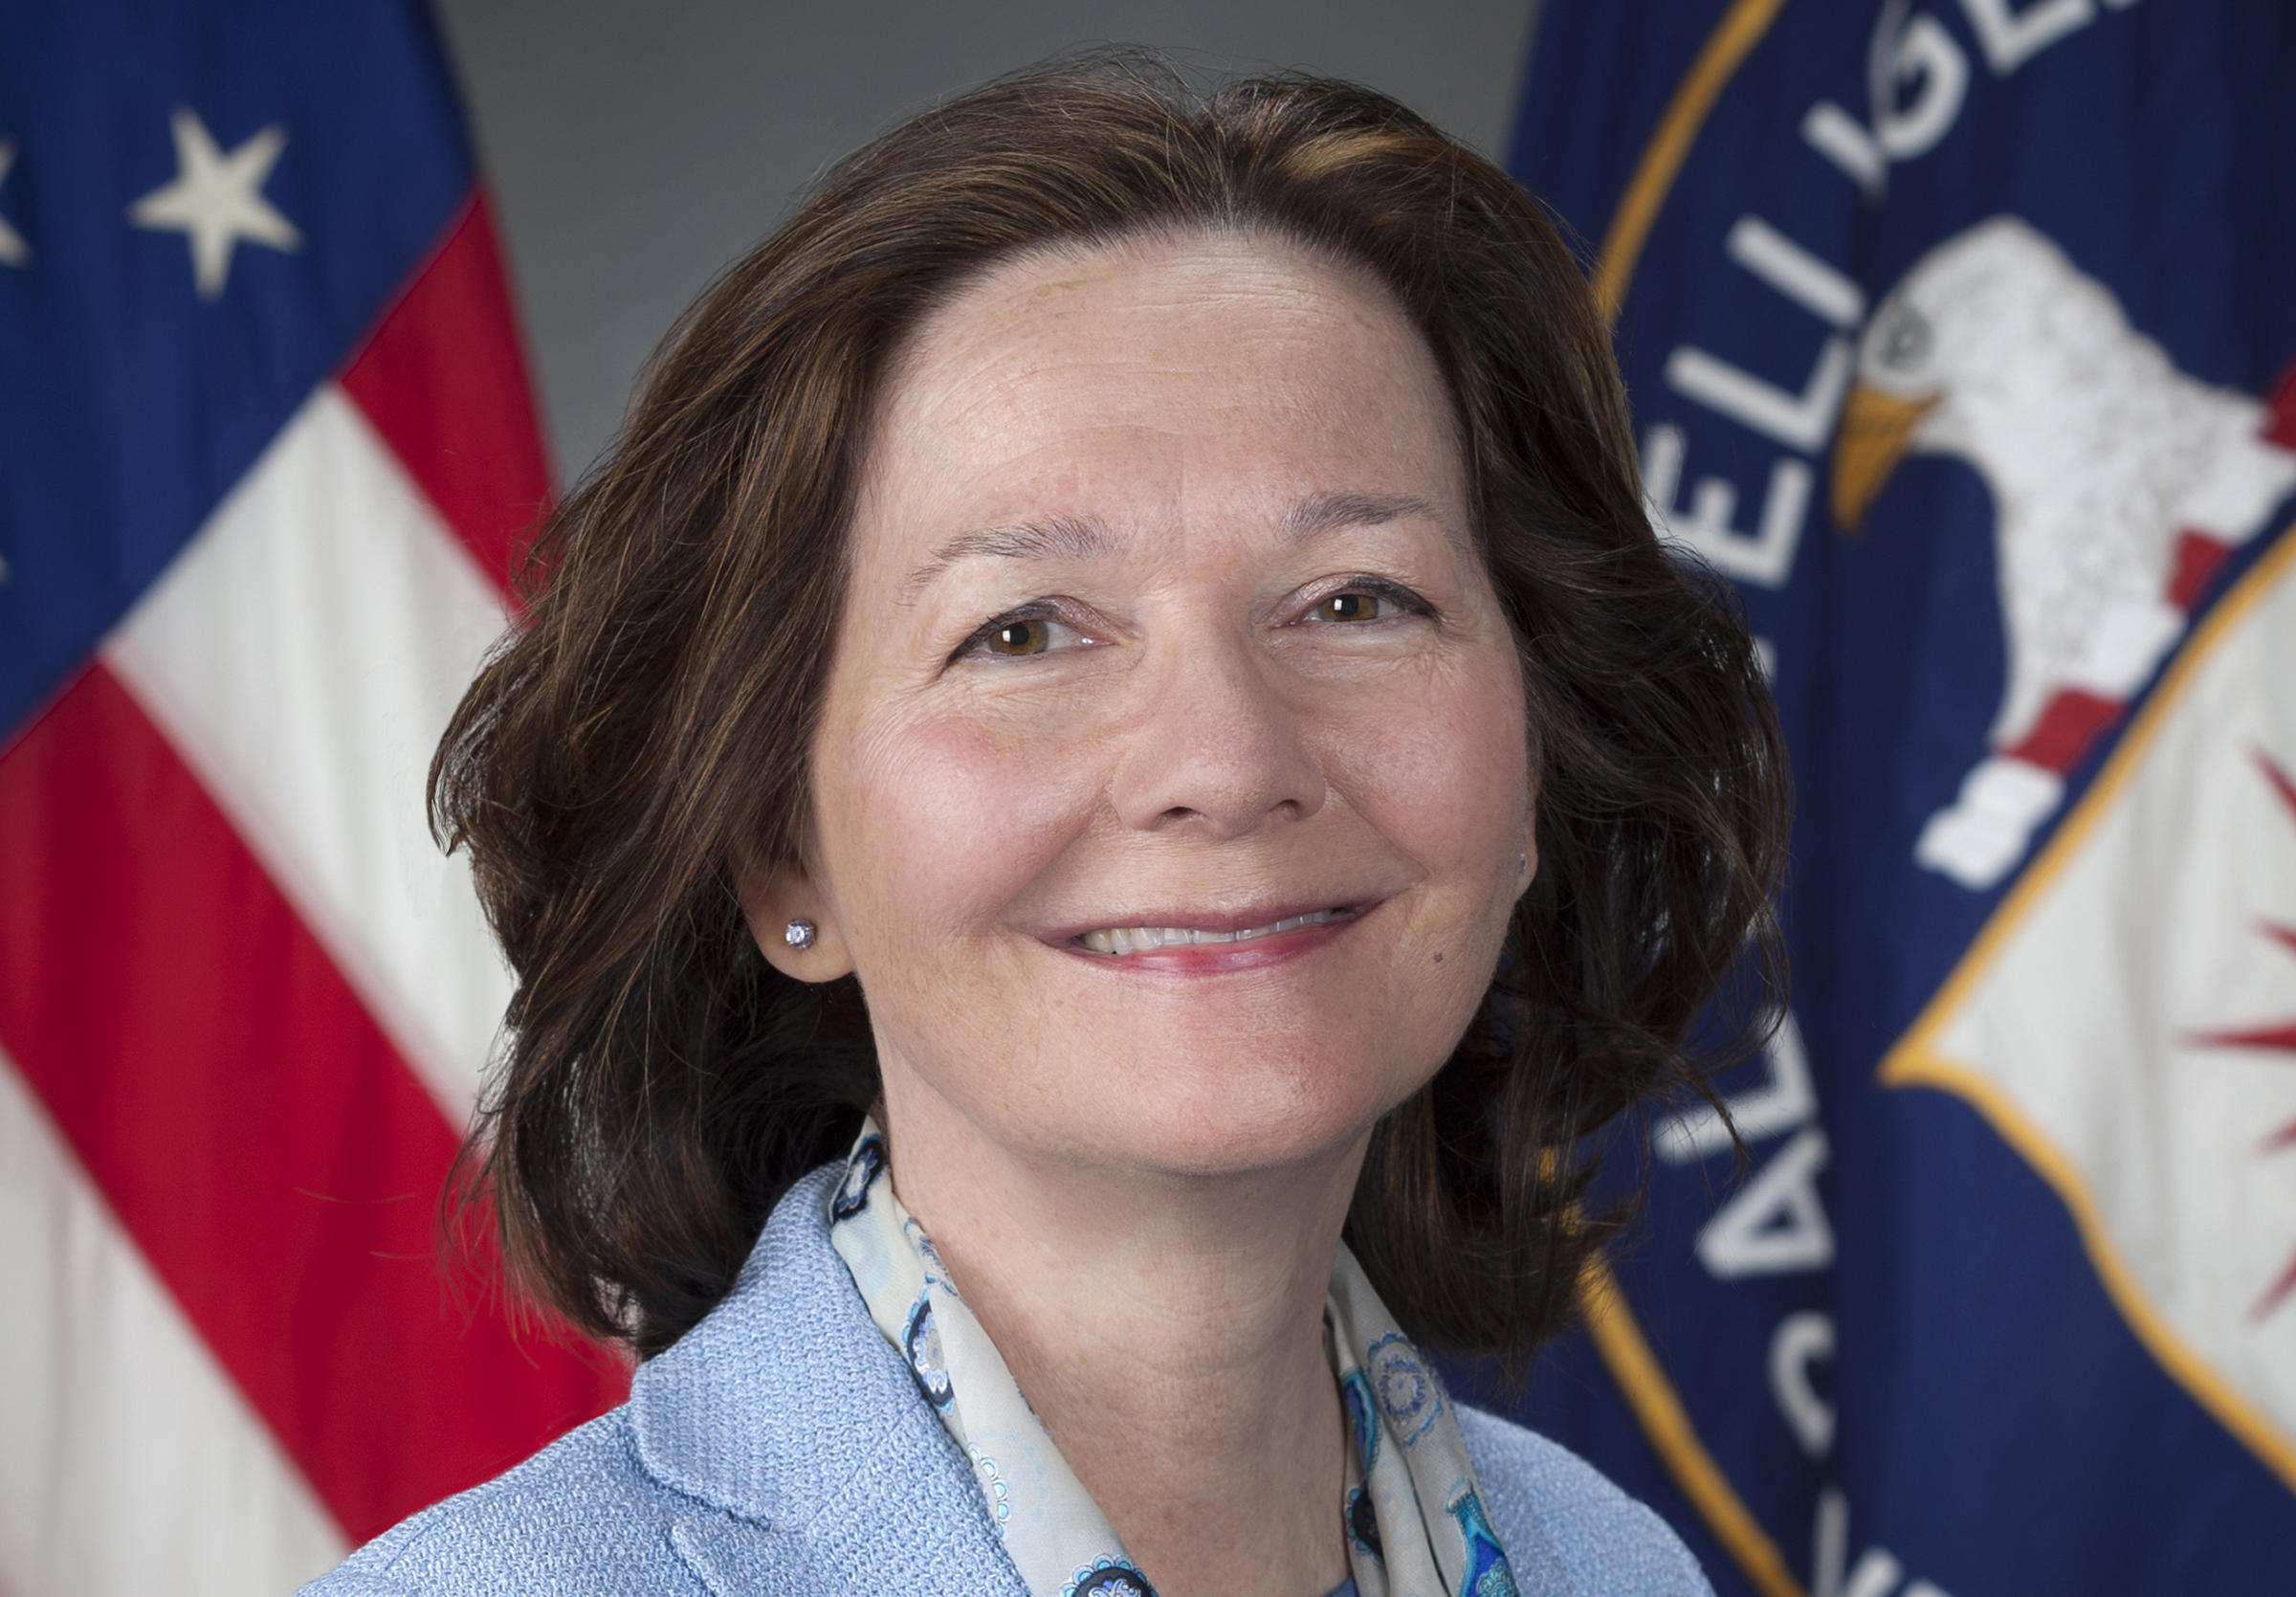 Probe clears Haspel on destruction of waterboarding tapes